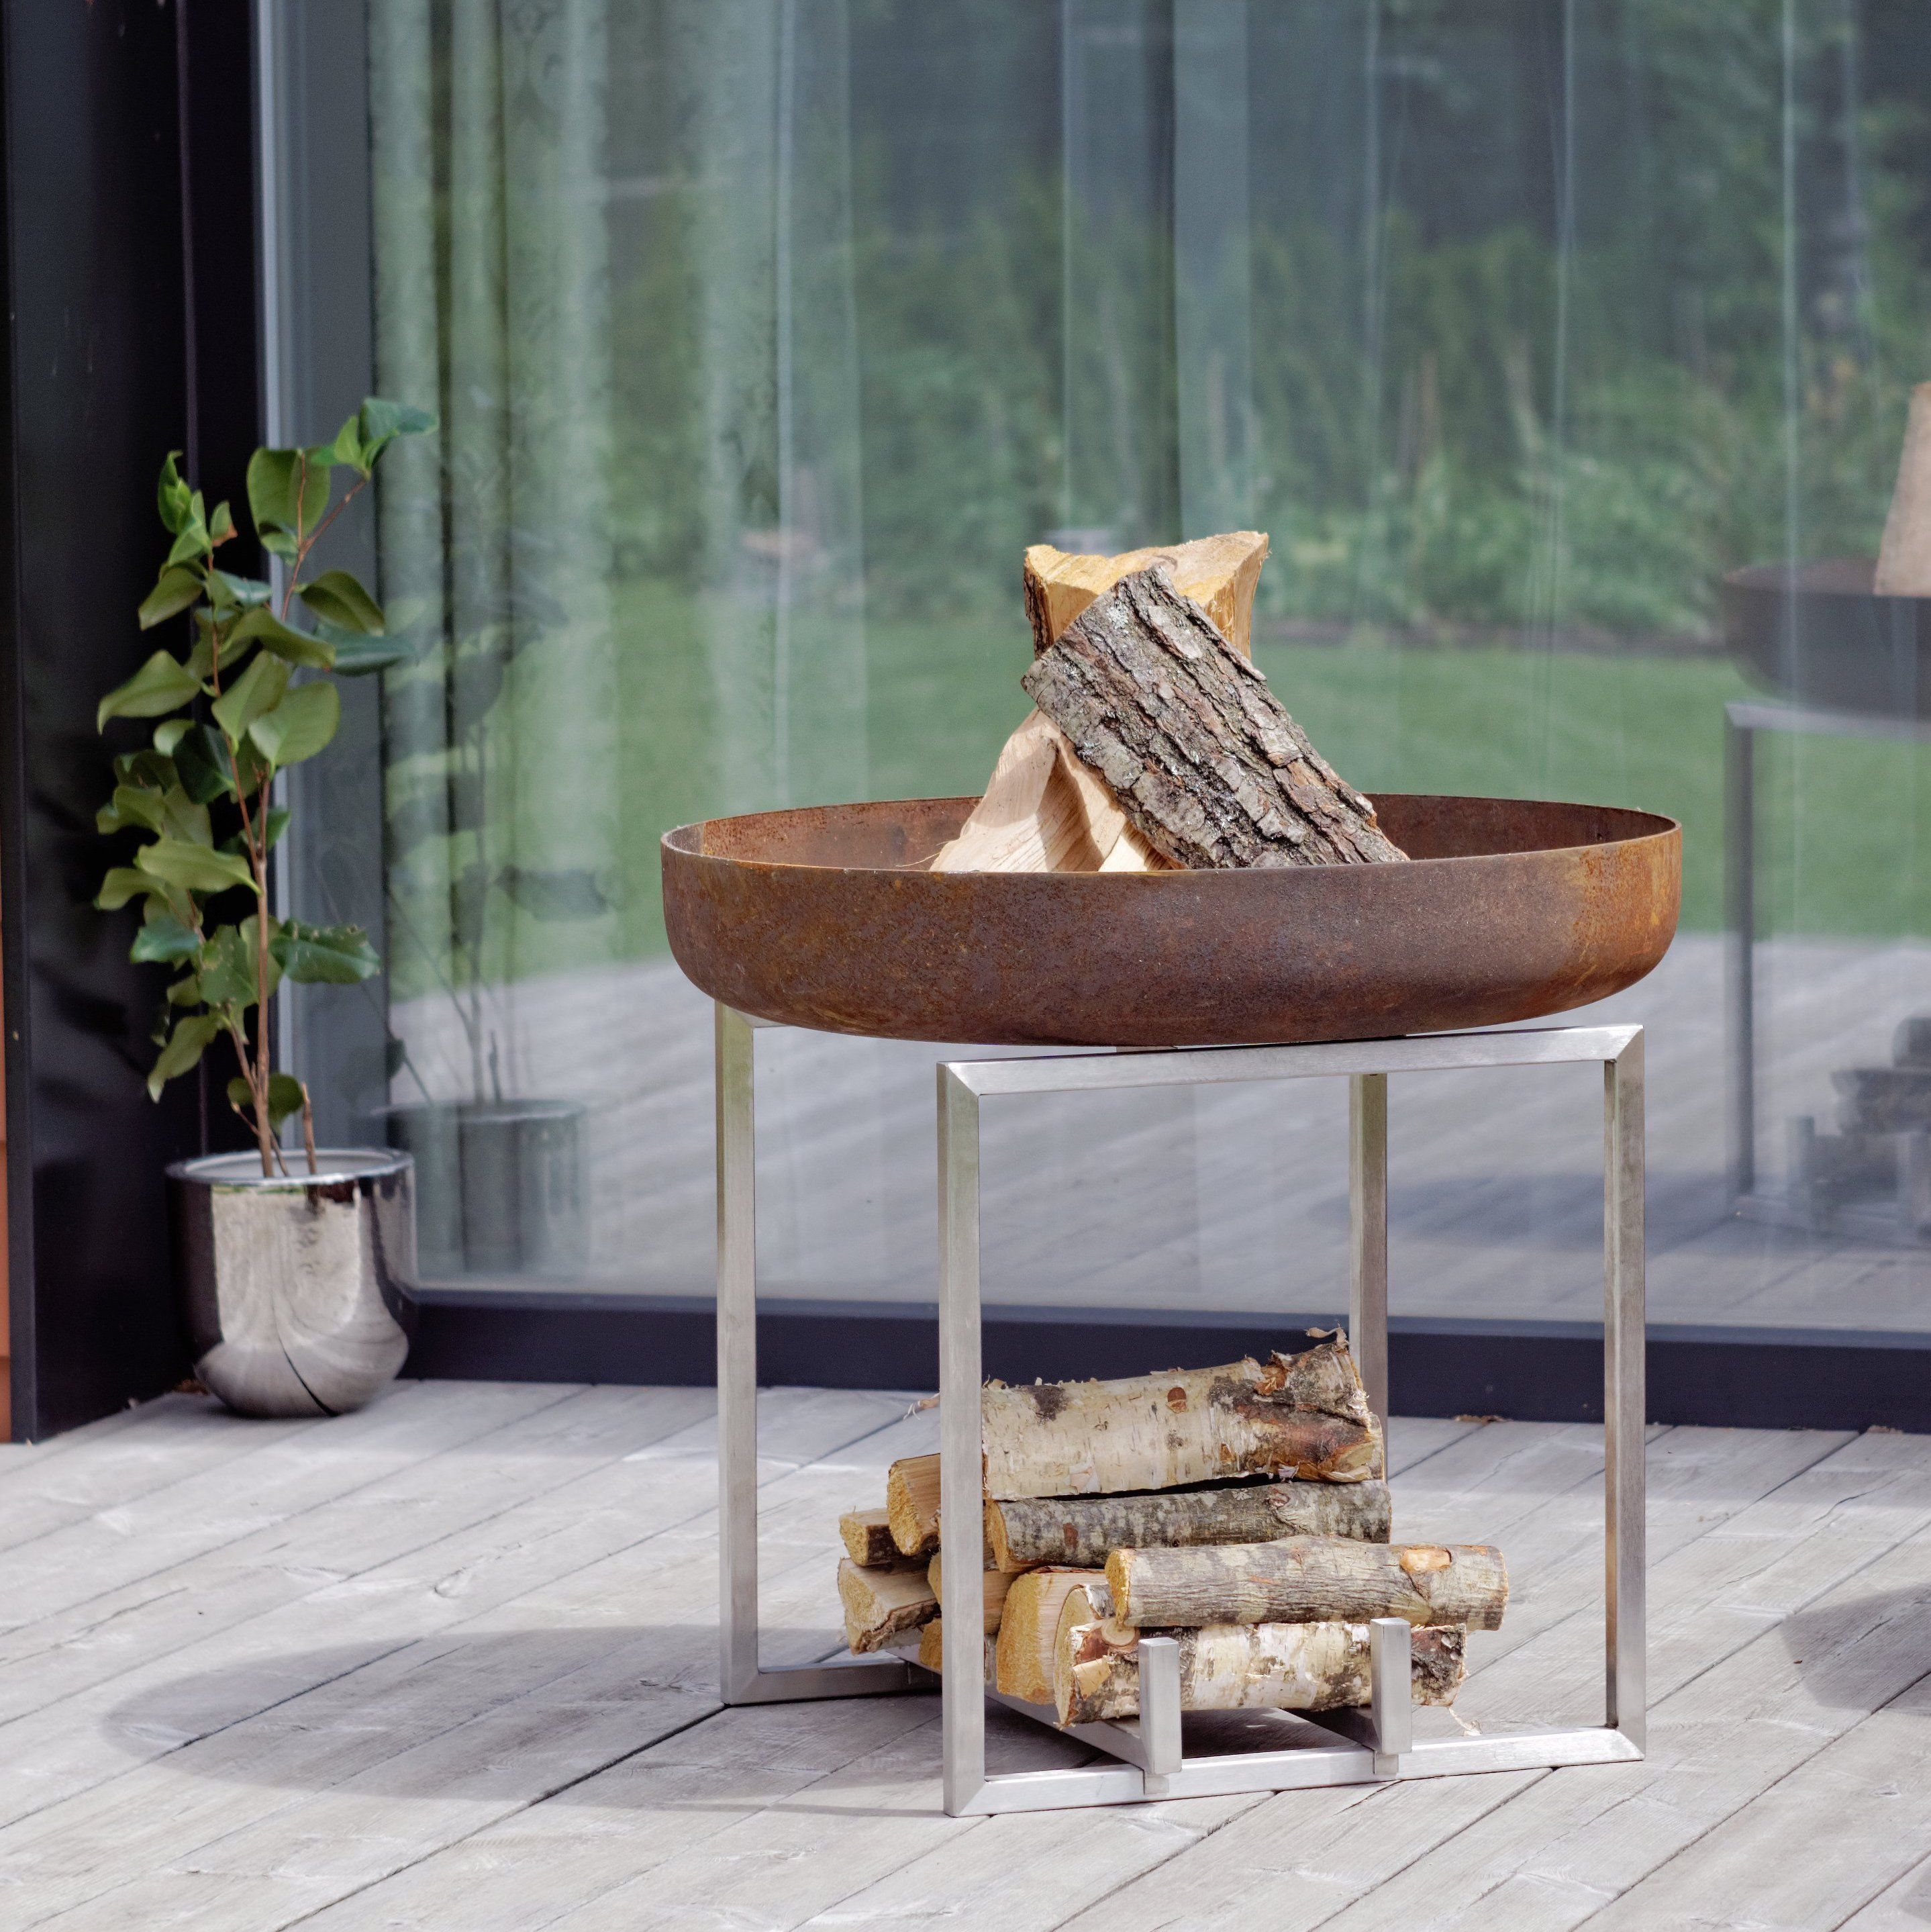 cube fire pit arpe studio uk contemporary fire pits barbecue